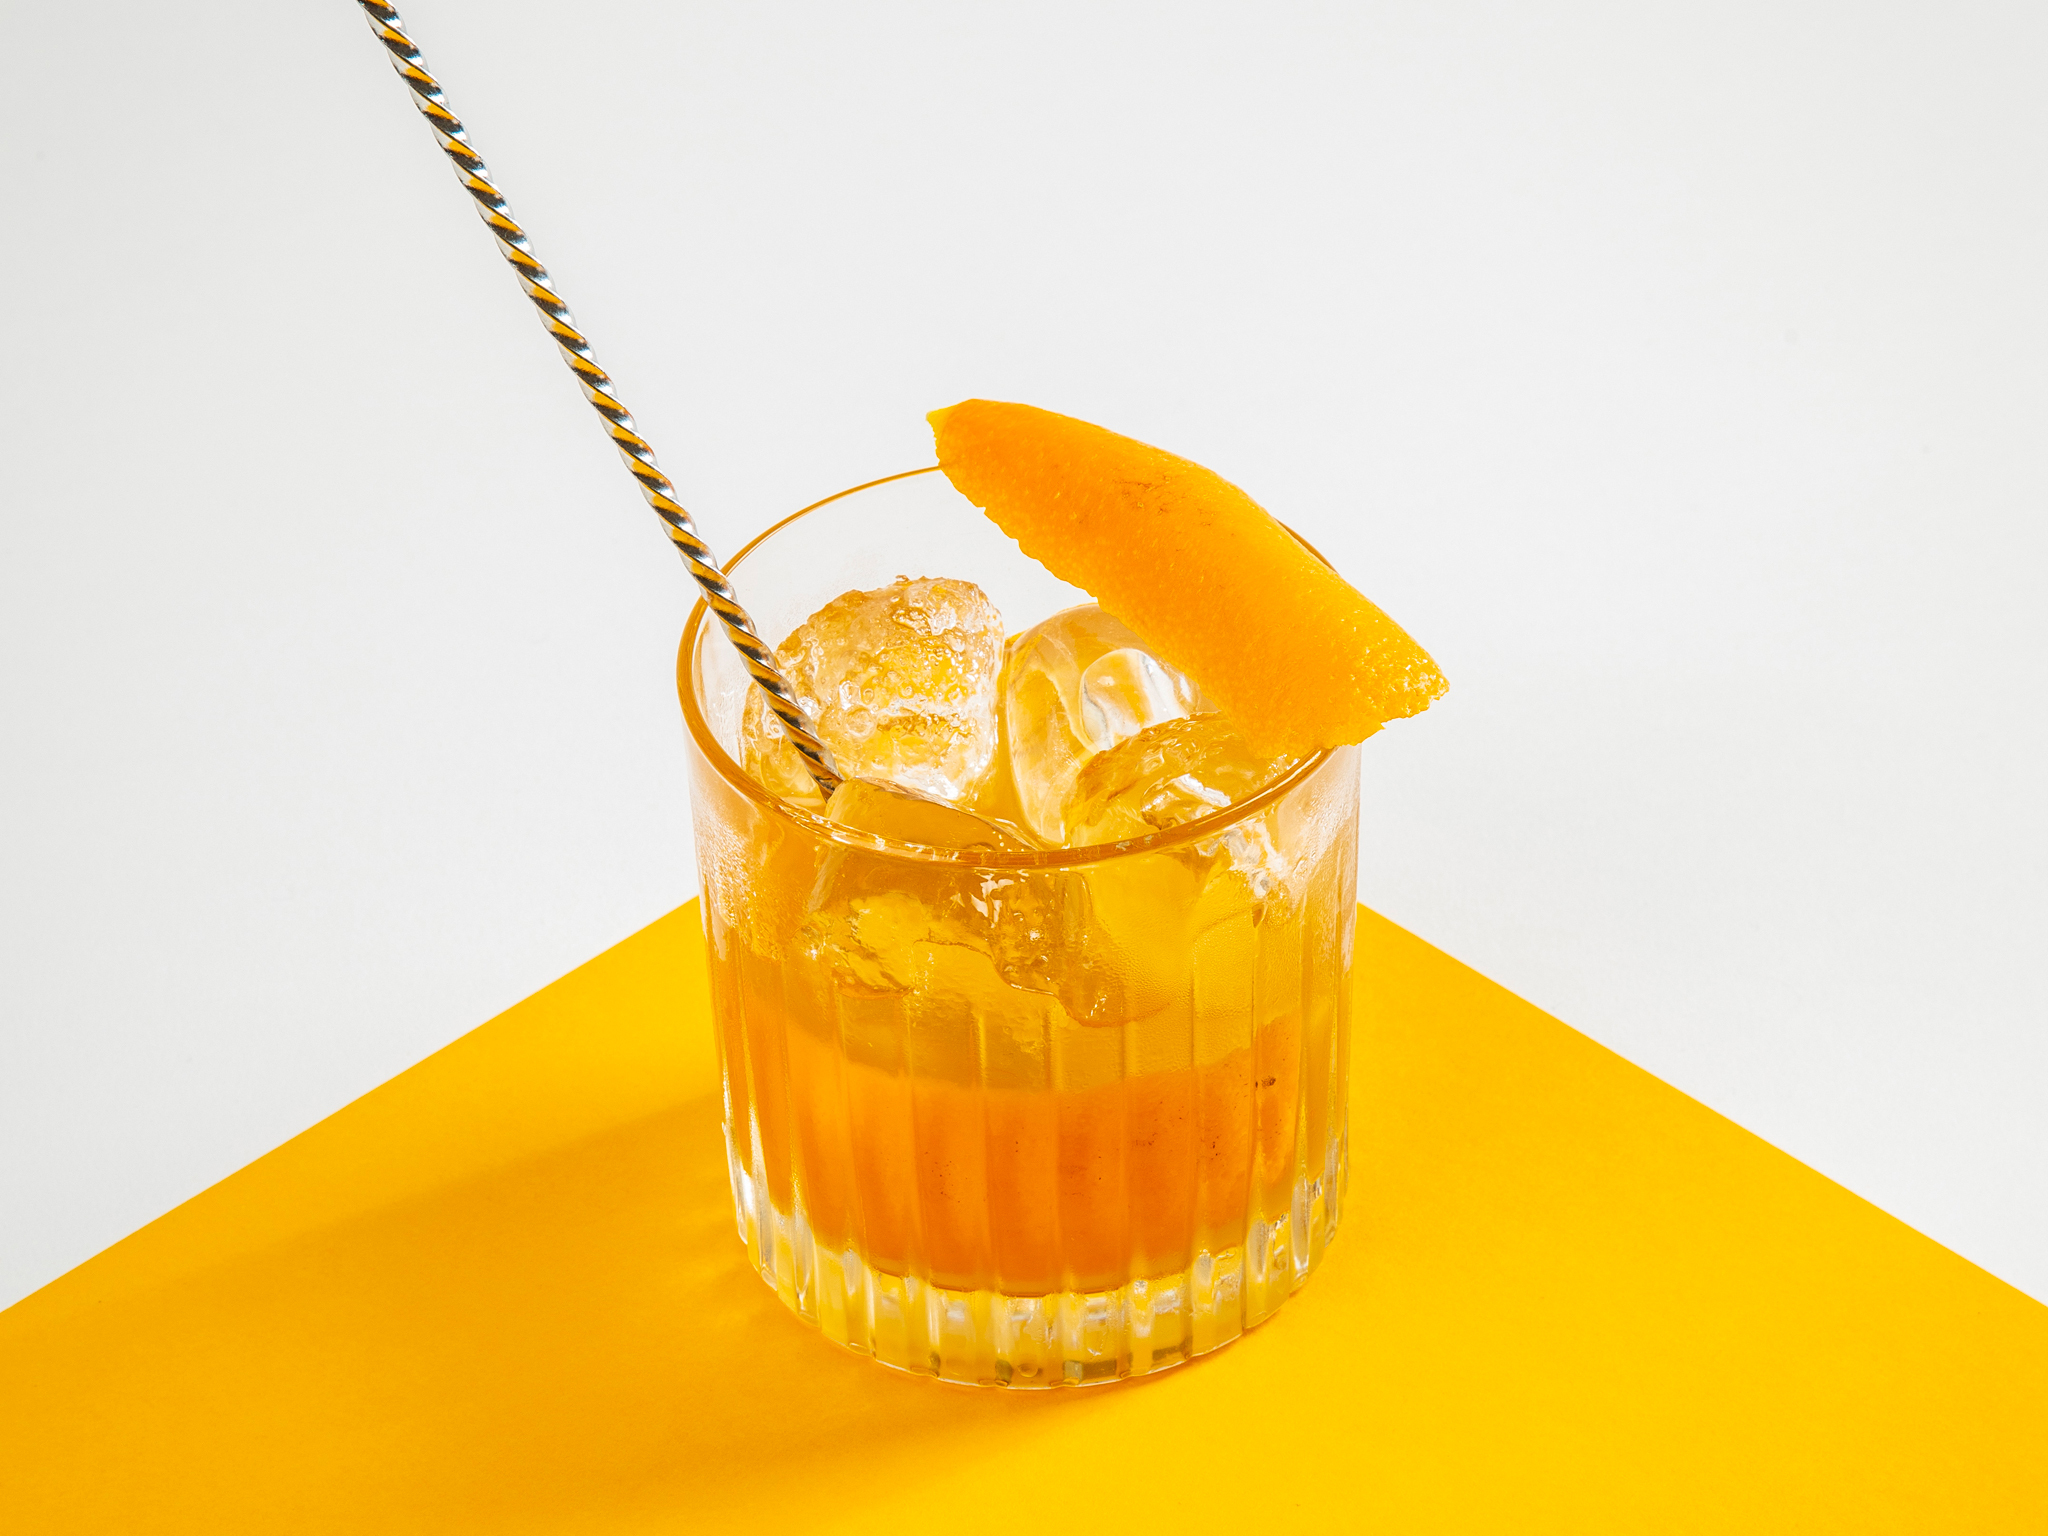 alcohol free cocktails, dry old fashioned at dishoom